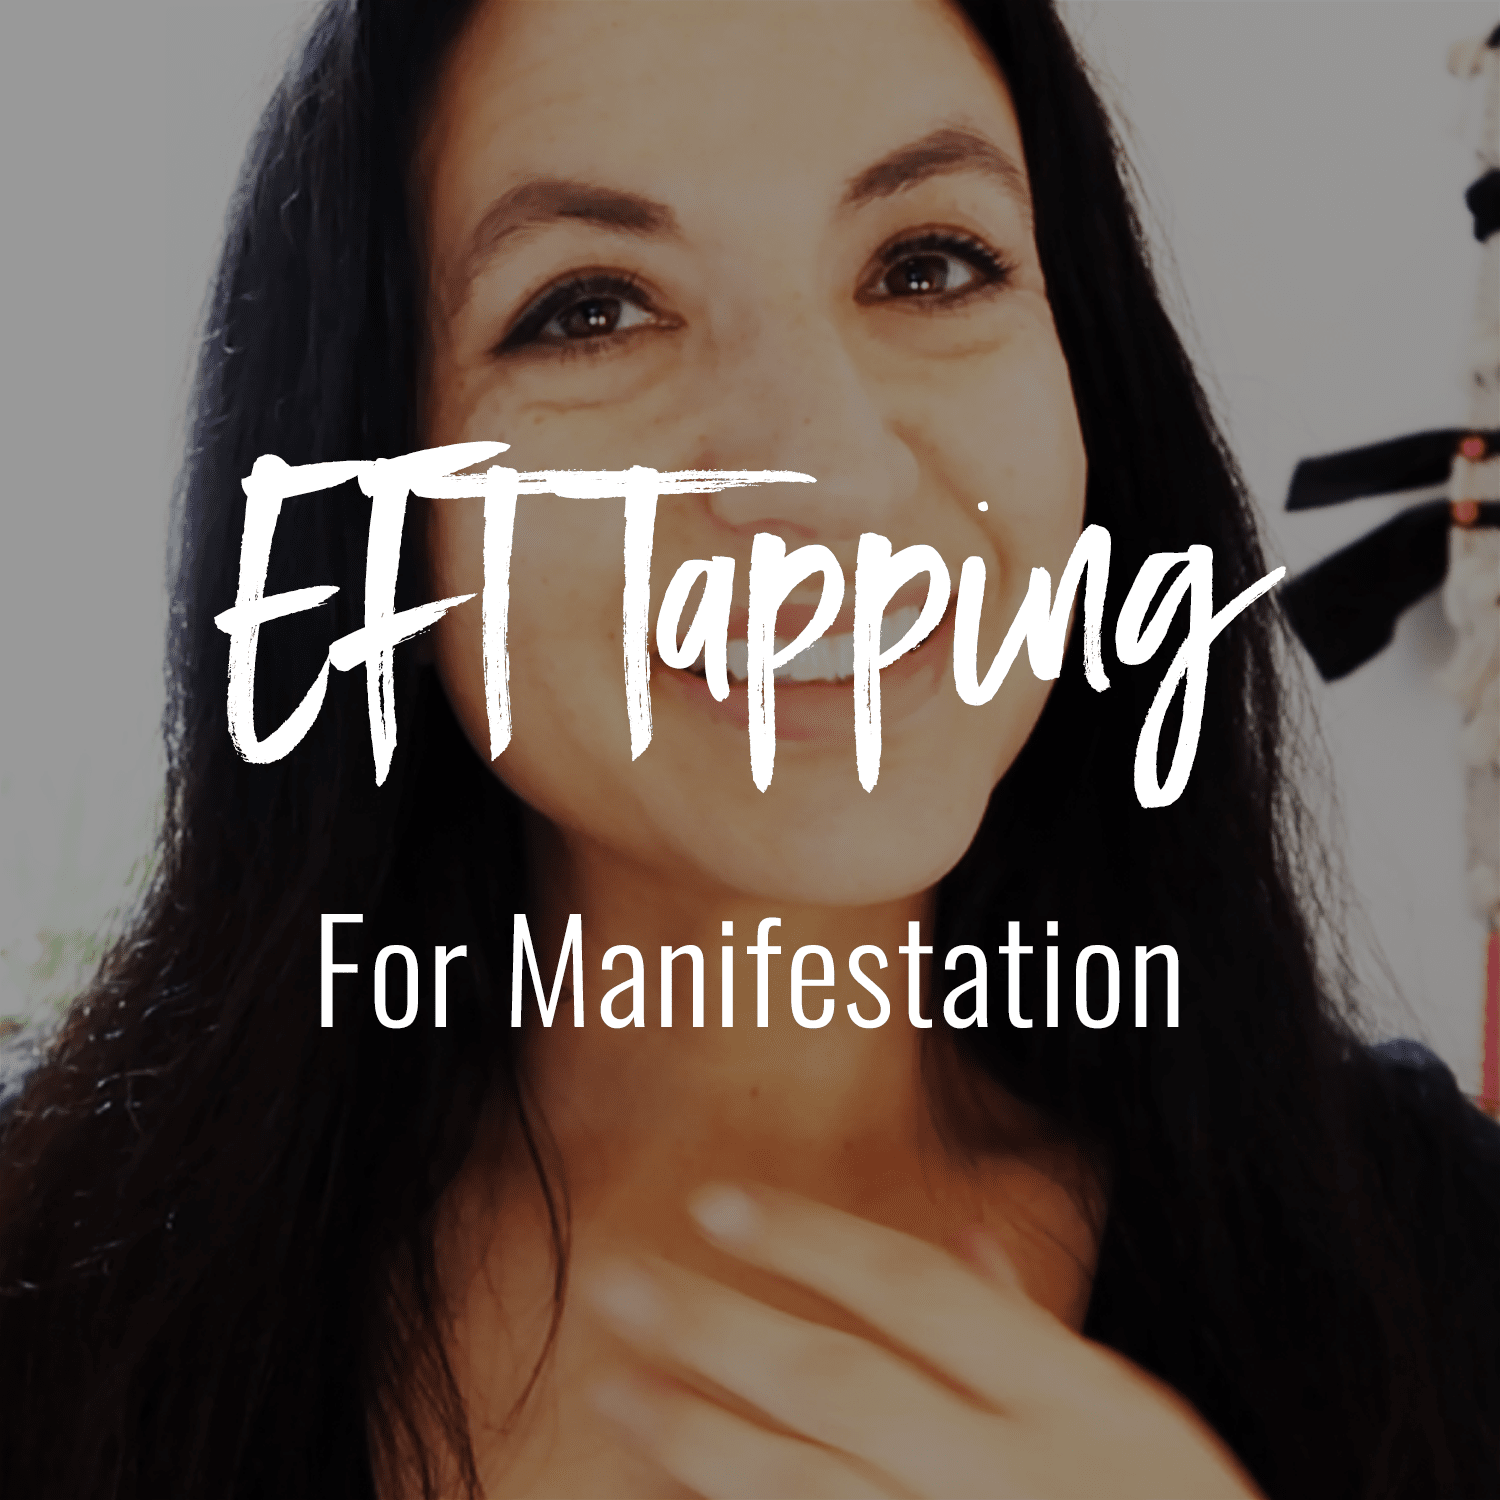 EFT Tapping For Manifestation